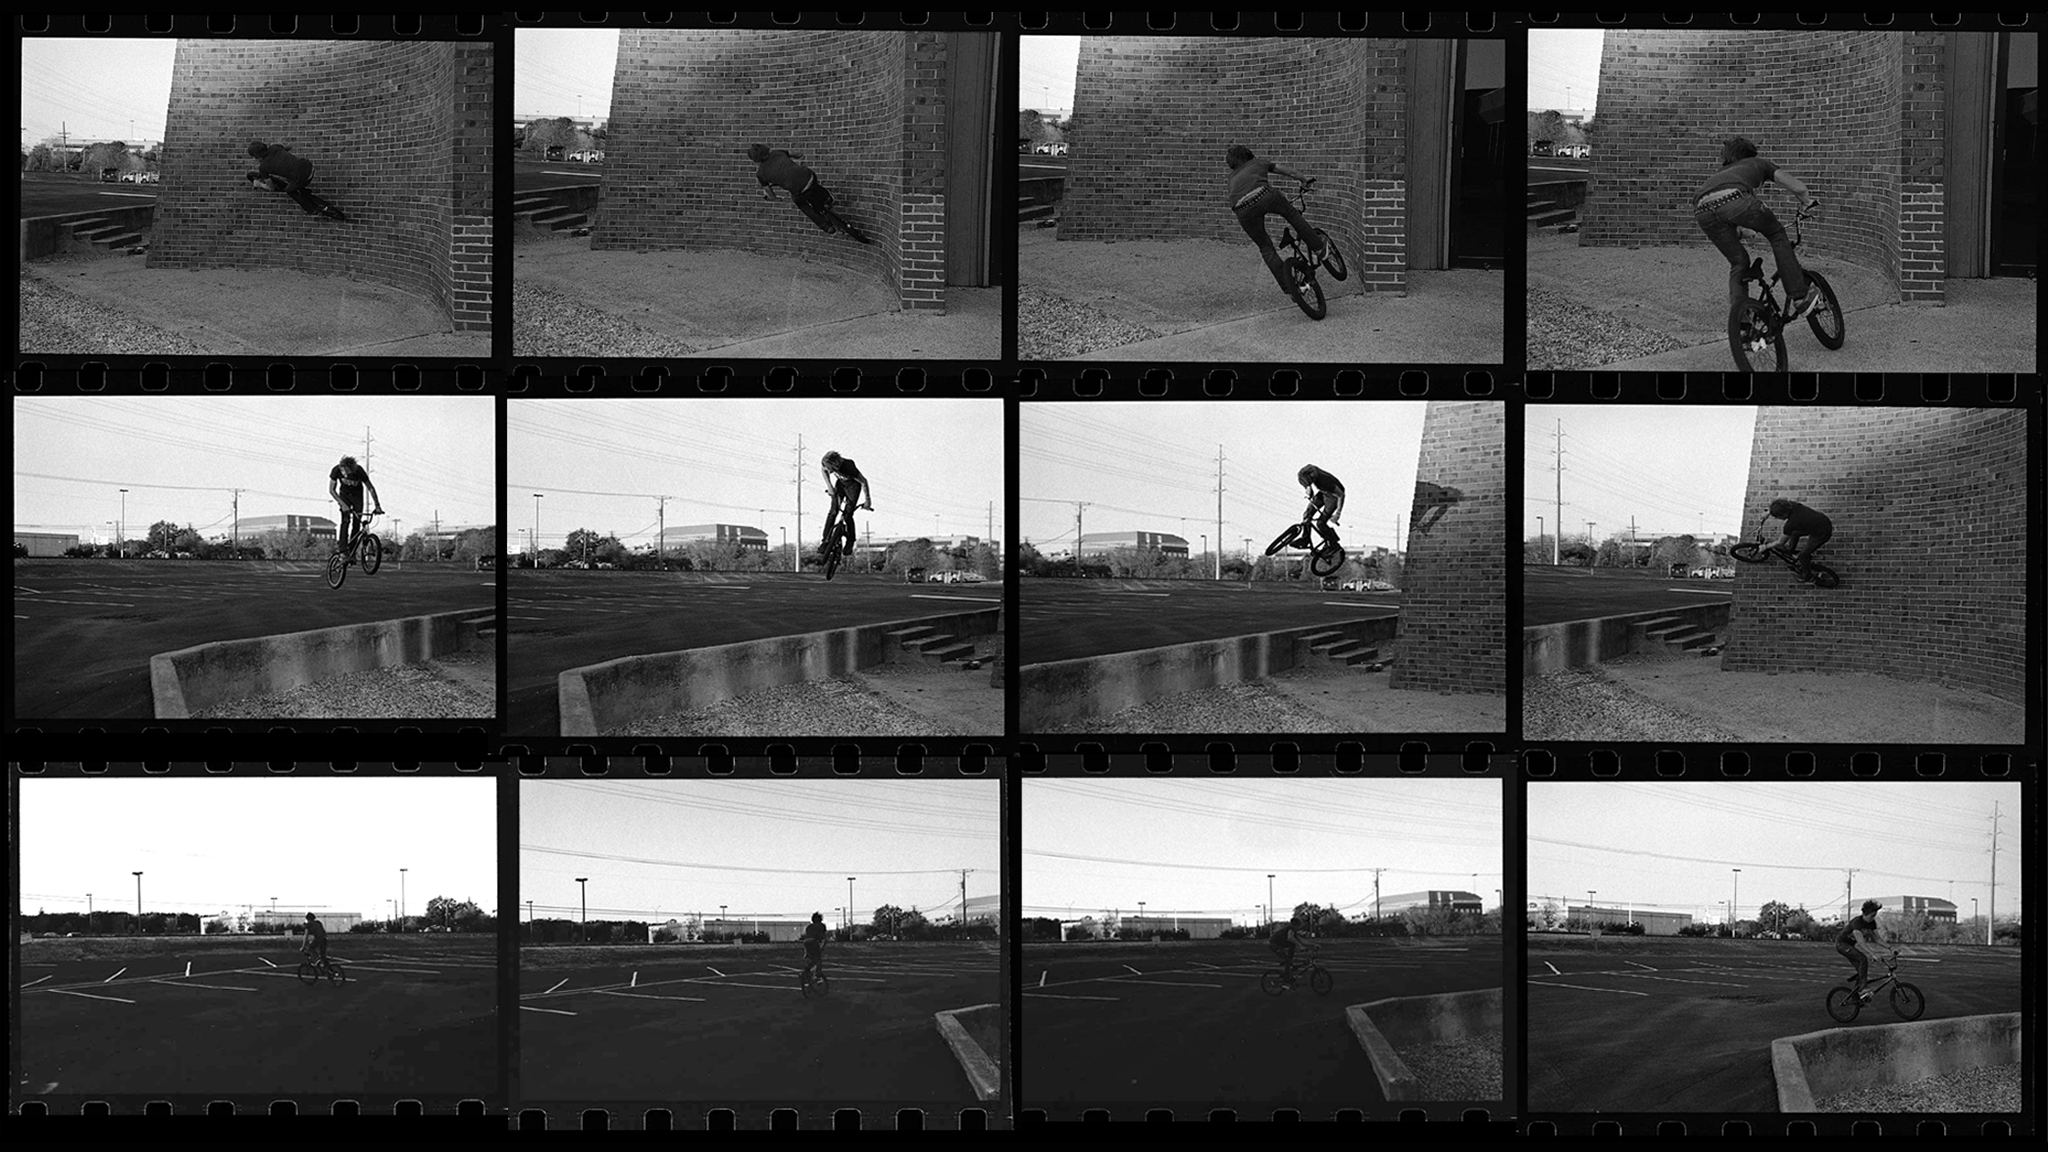 Curved wallride to 180, 2005